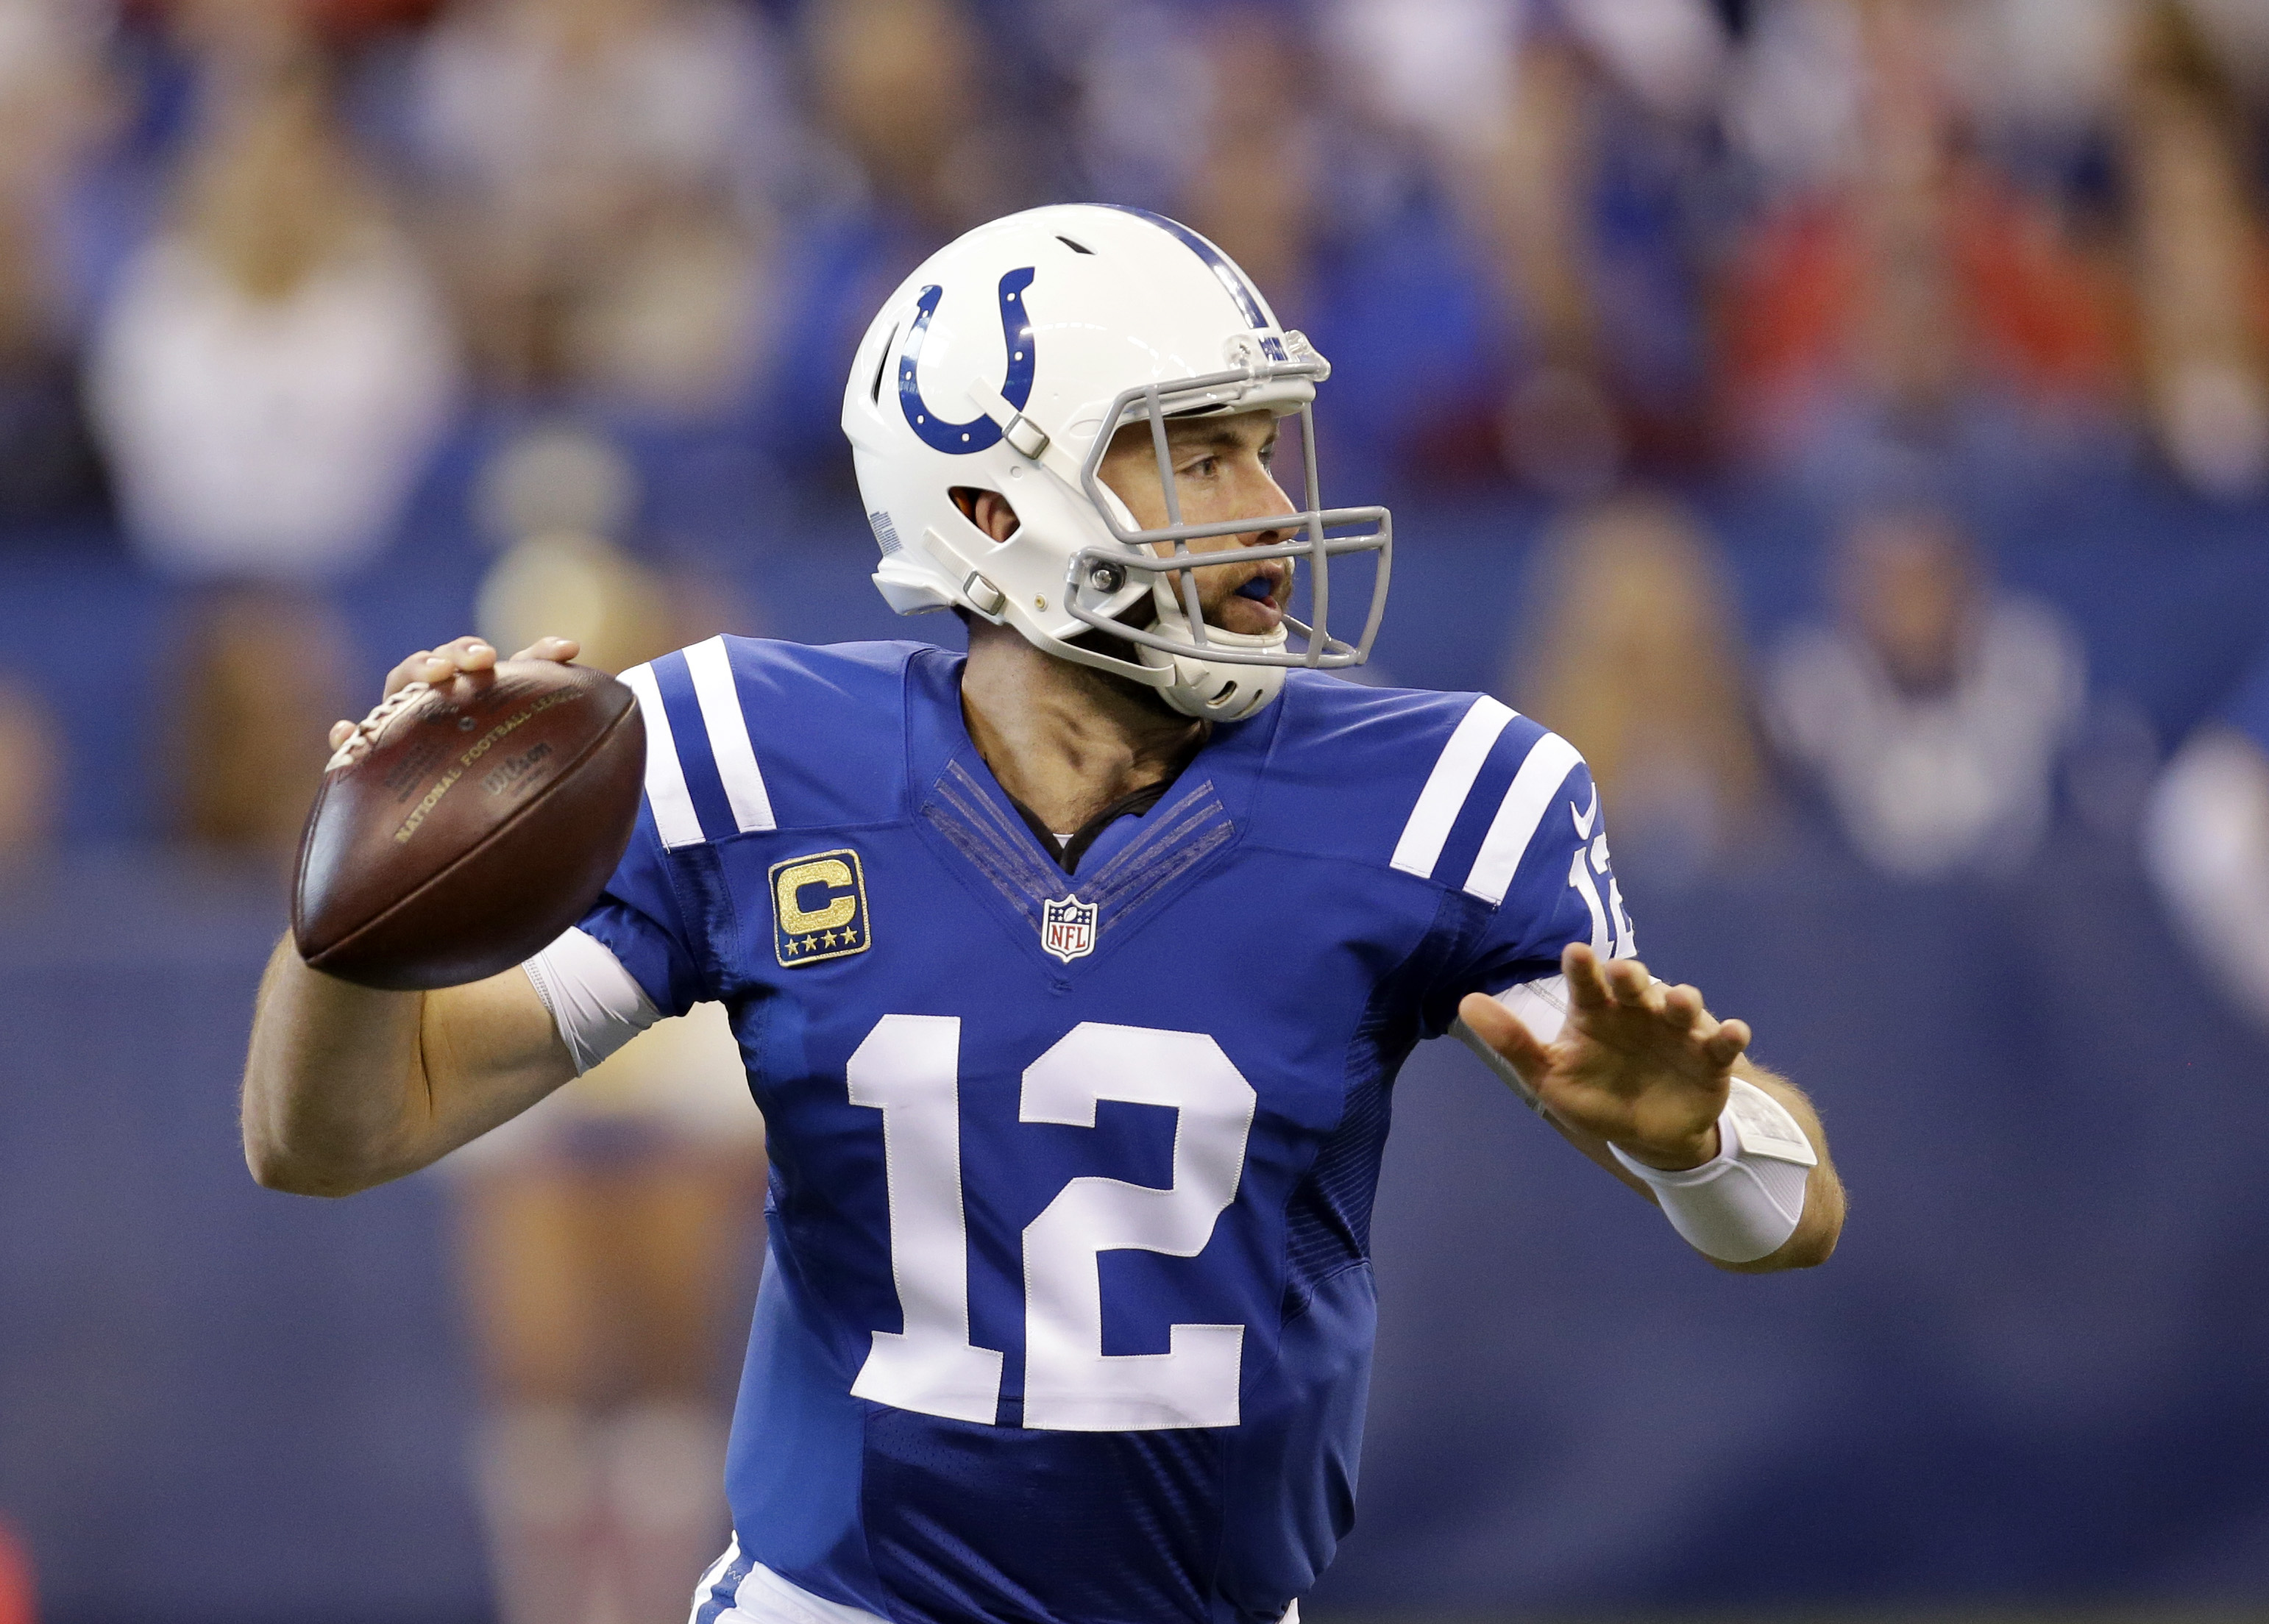 FILE - In this Sunday, Oct. 30, 2016, file photo, Indianapolis Colts quarterback Andrew Luck throws during the first half of an NFL football game against the Kansas City Chiefs, in Indianapolis. Luck is coming off a concussion that sidelined him for one g